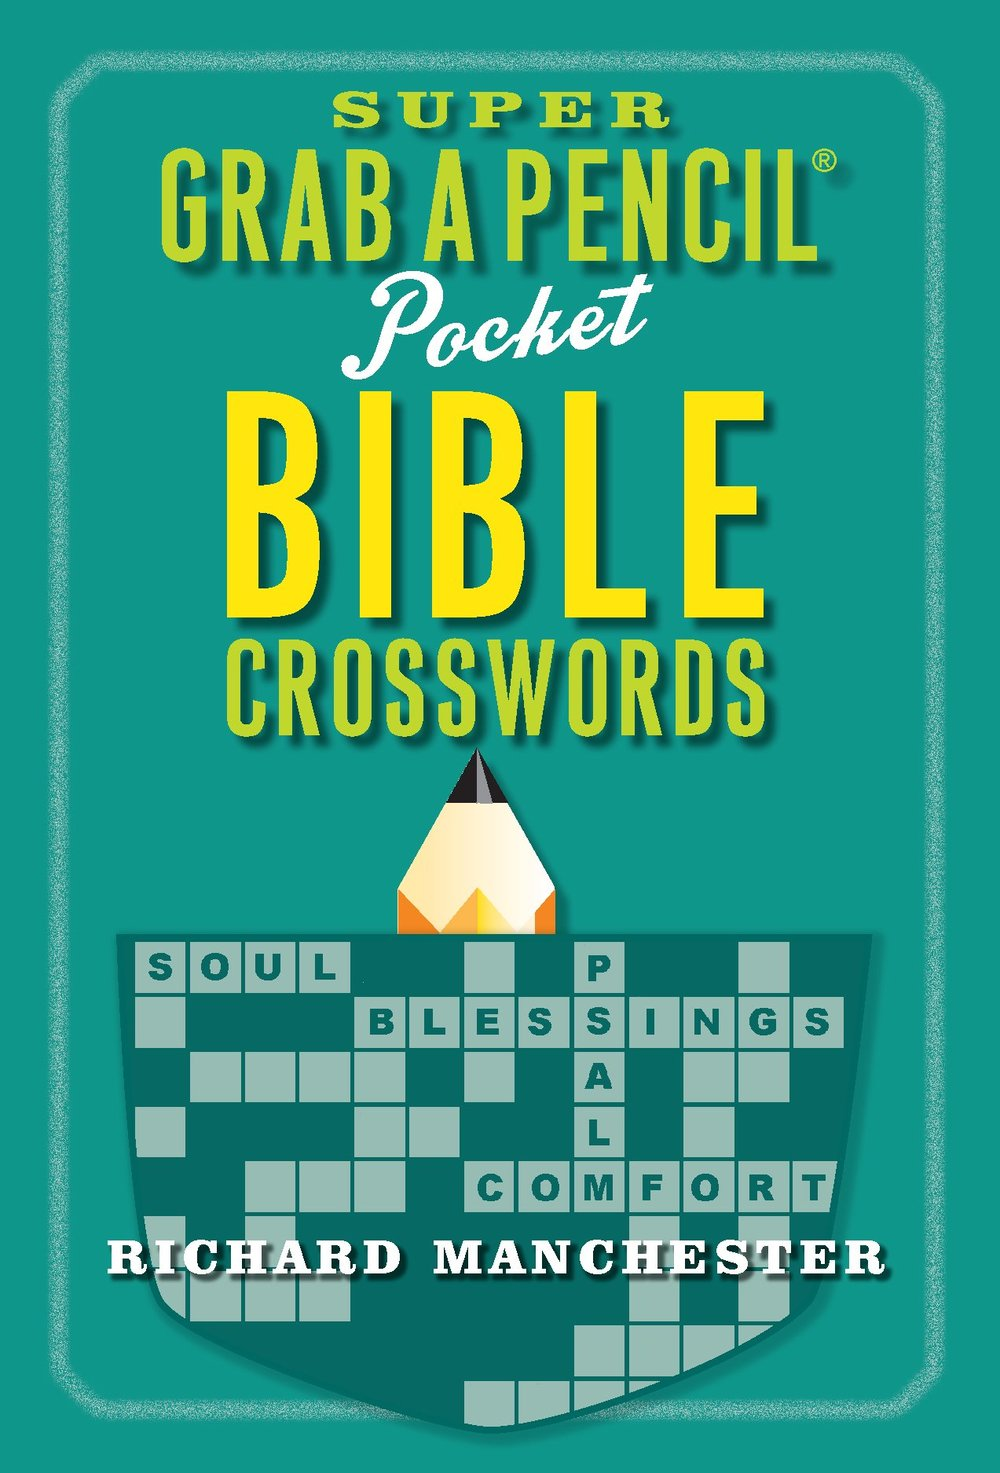 Pocket Bible 3D.jpg